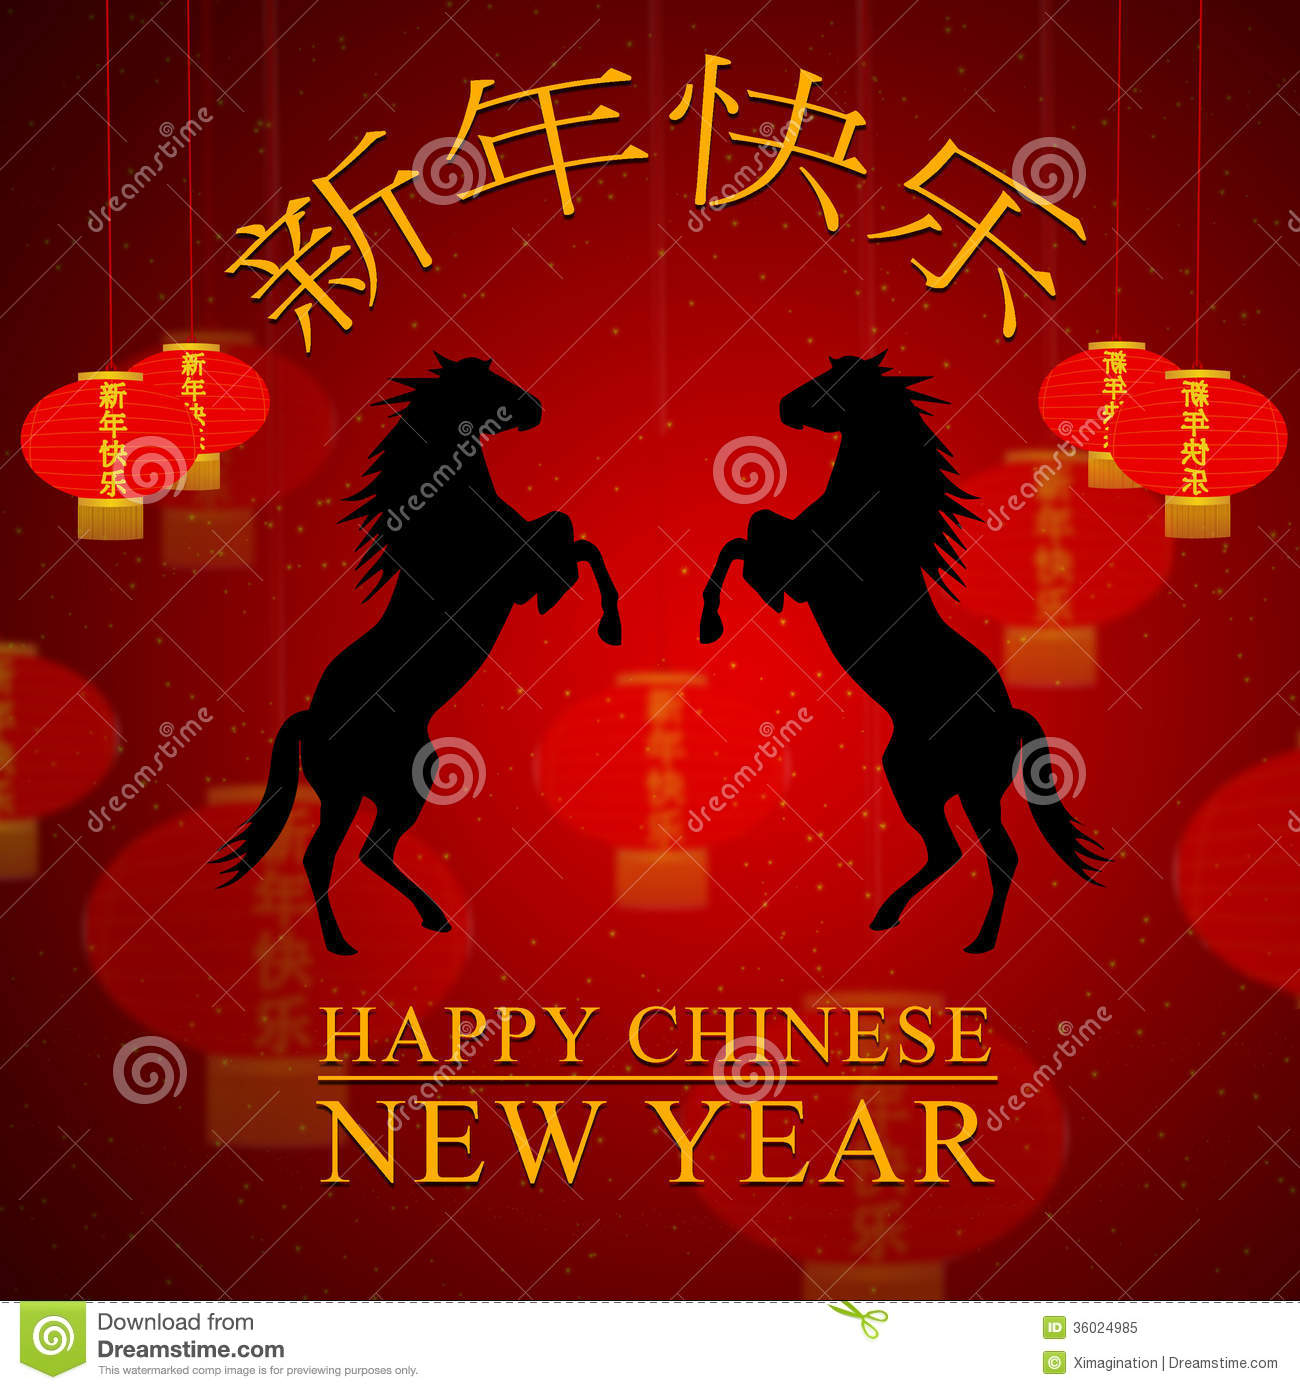 happy chinese new year card design royalty free stock